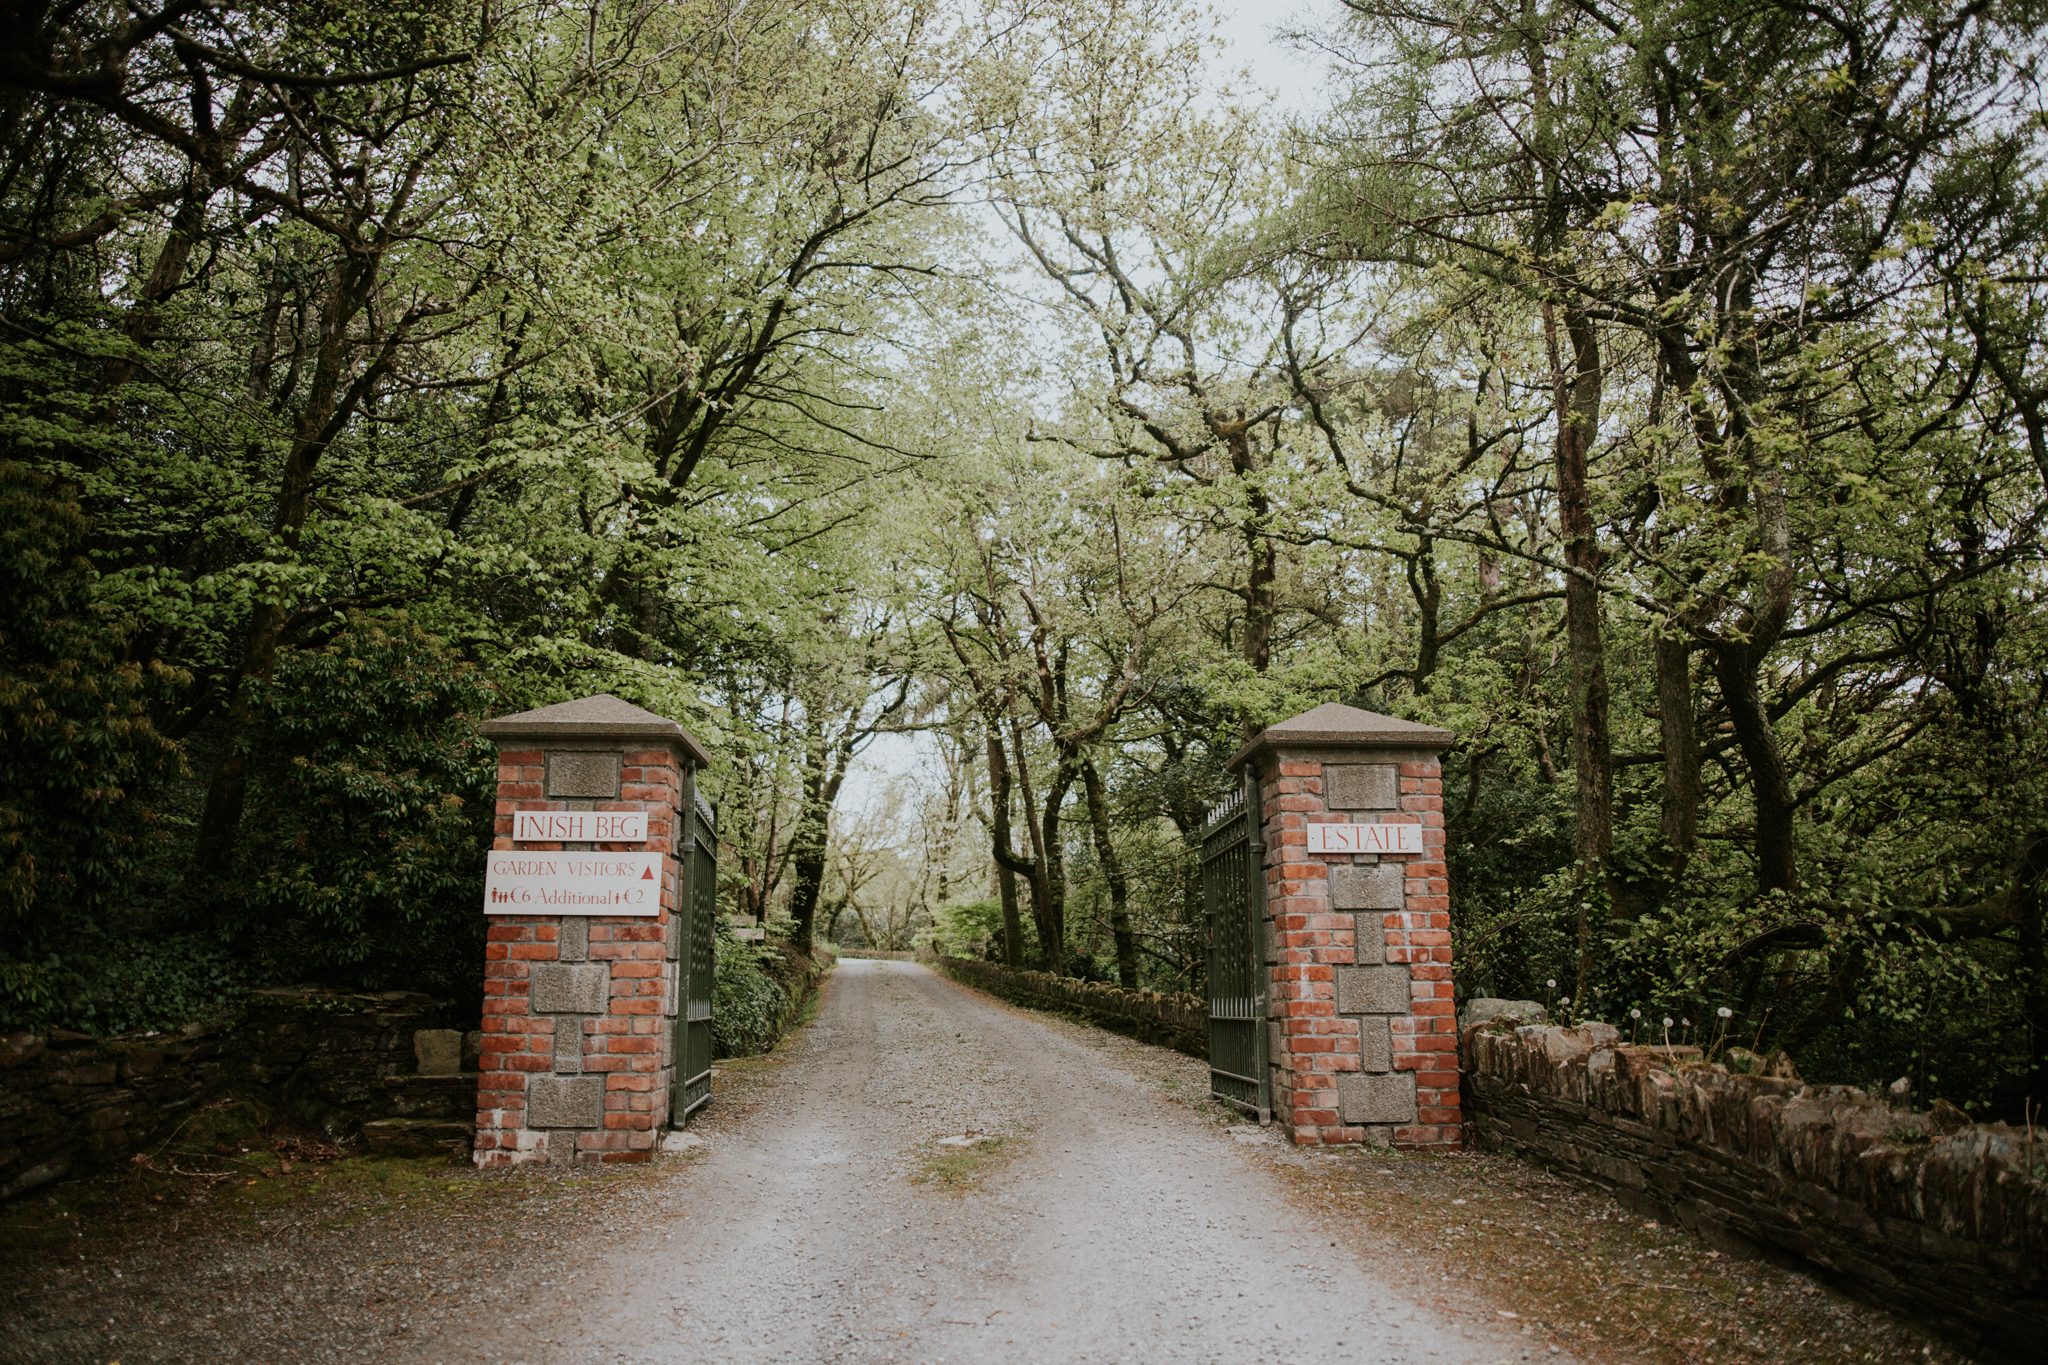 Entrance to the wedding venue in Cork - Inish Beg Estate Wedding Photographer